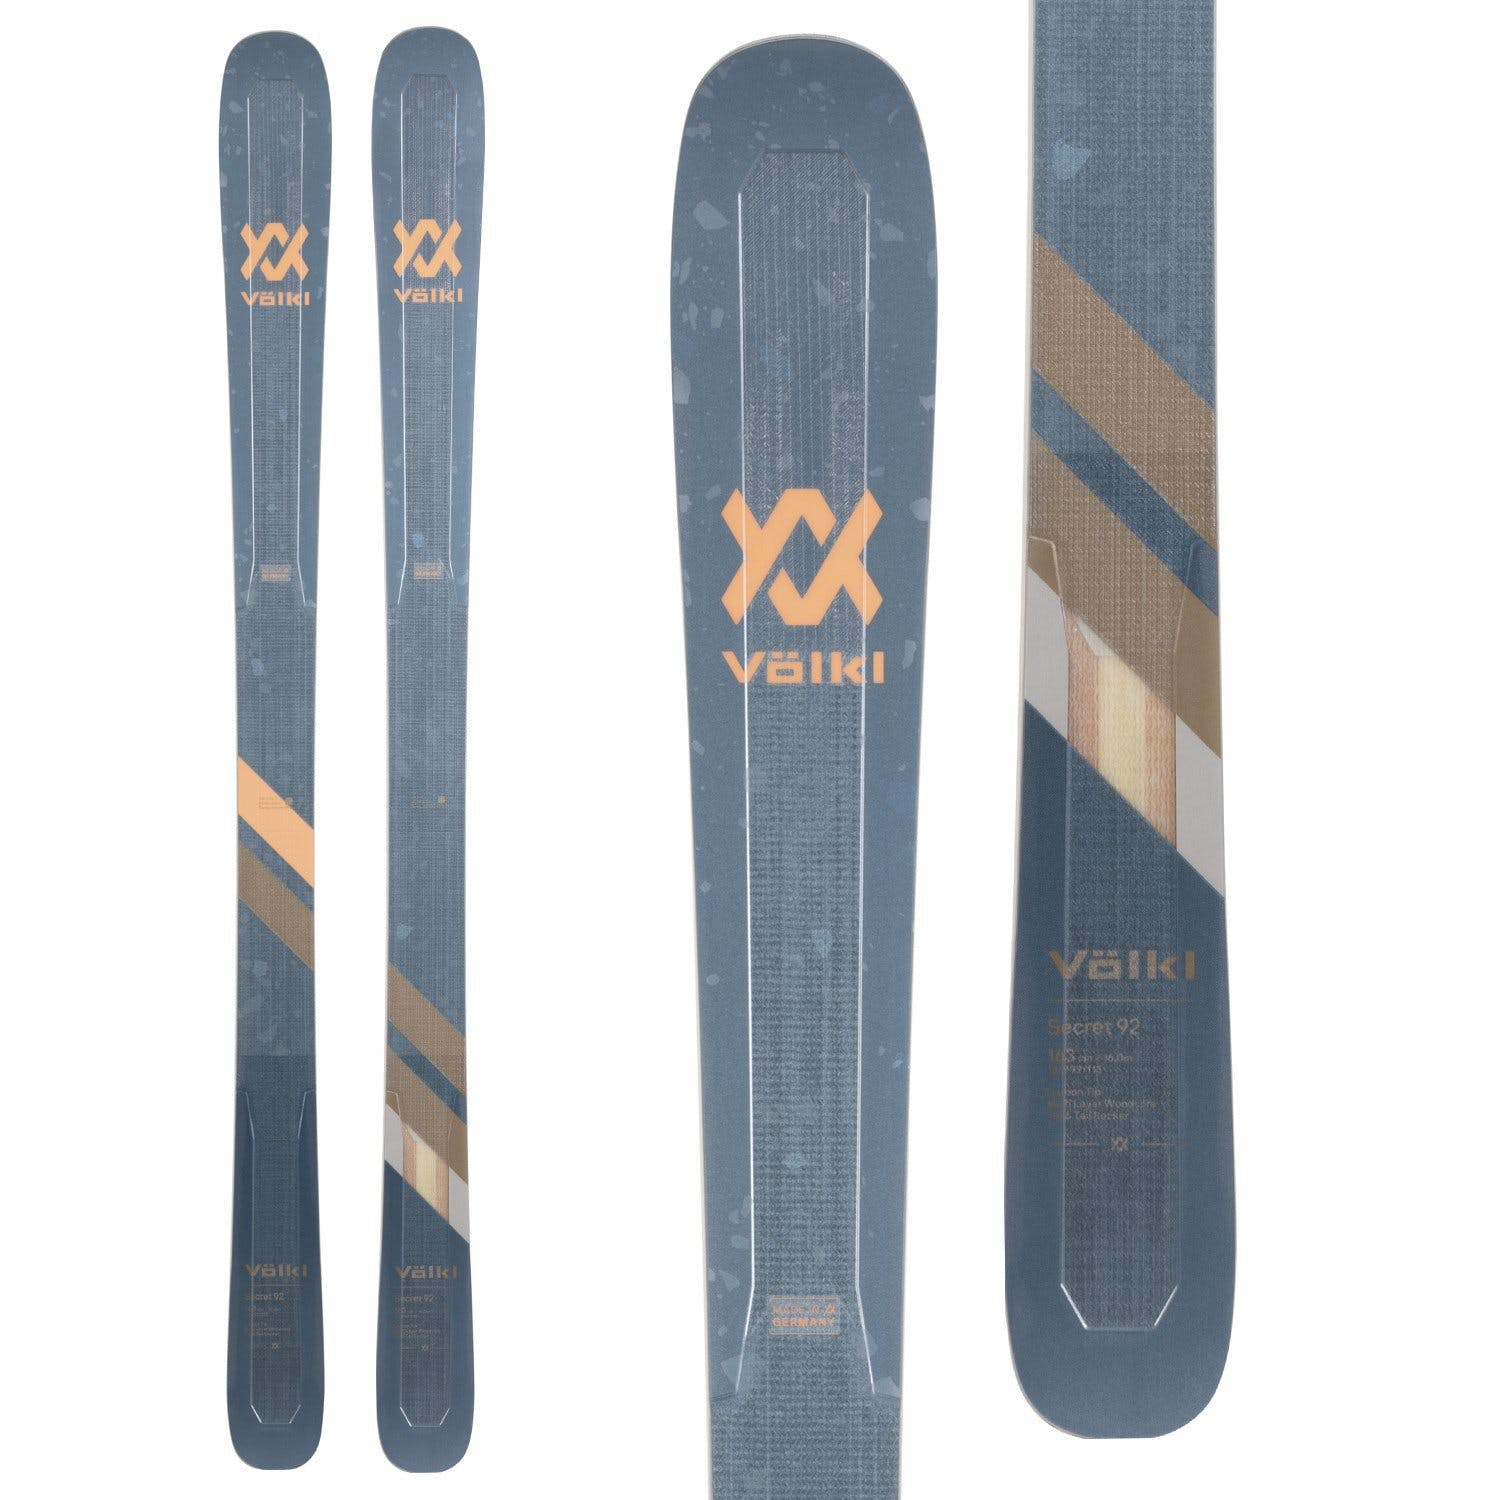 Völkl Women's Secret 92 Flat Skis · 2021